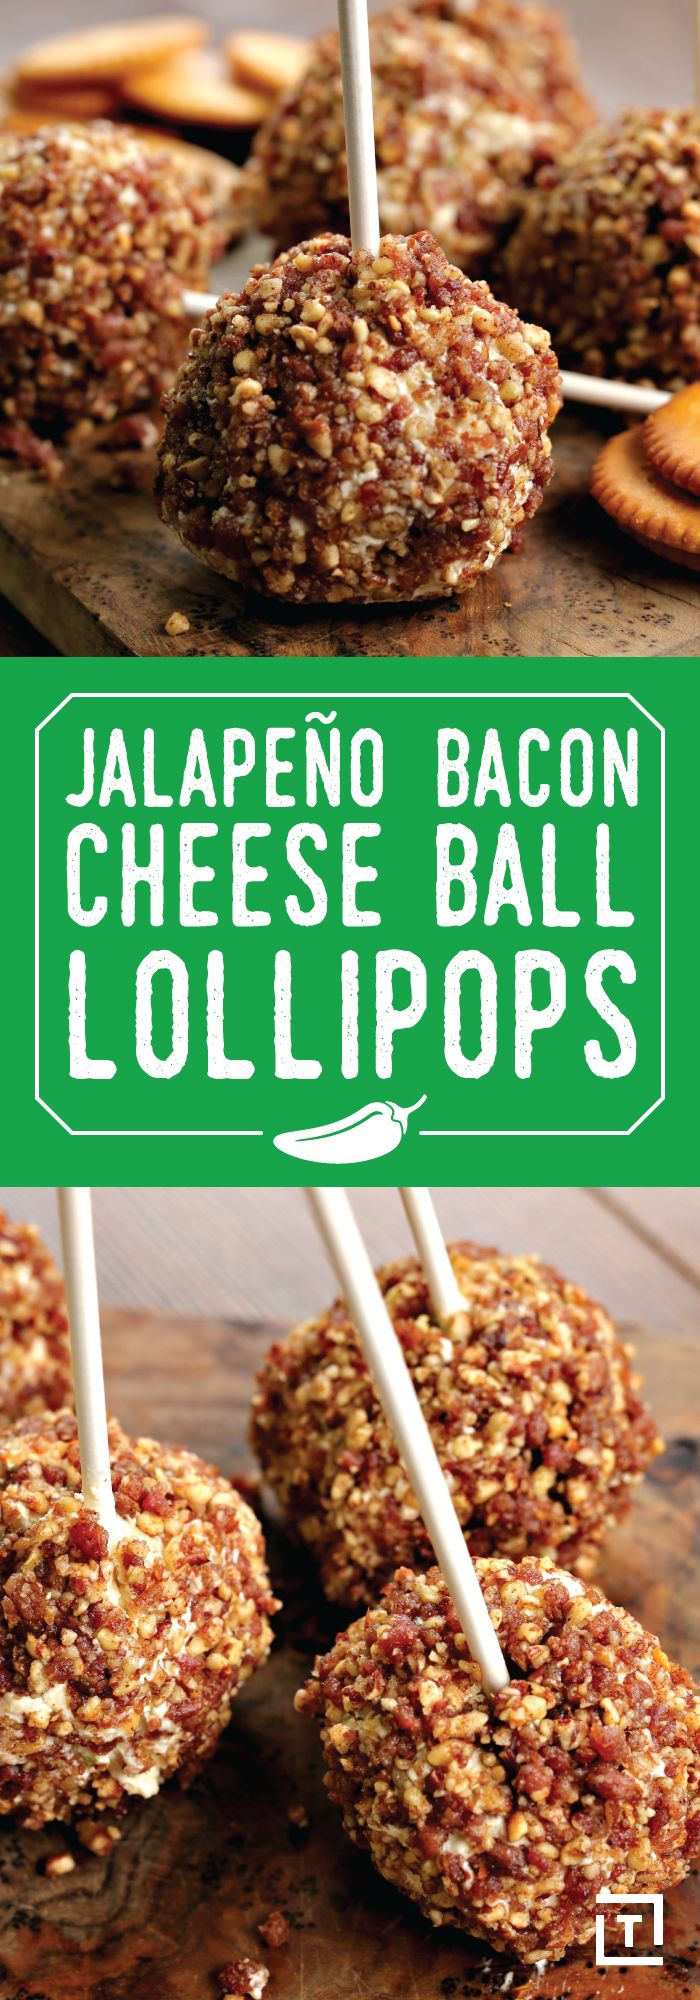 For whatever reason, finger food becomes all the more appetizing when served on a stick -- it can double as aesthetically pleasing grab-and-go fare, or as accessible and classy hors d'oeuvres. Whichever you prefer, it's safe to say you'll be a sucker for Twisted's jalapeño, bacon & cheese ball lollipops. Don't be fooled by the unfussy recipe: these little spheres might be small, but they boast robust flavor, striking the perfect balance between crunchiness and creaminess.